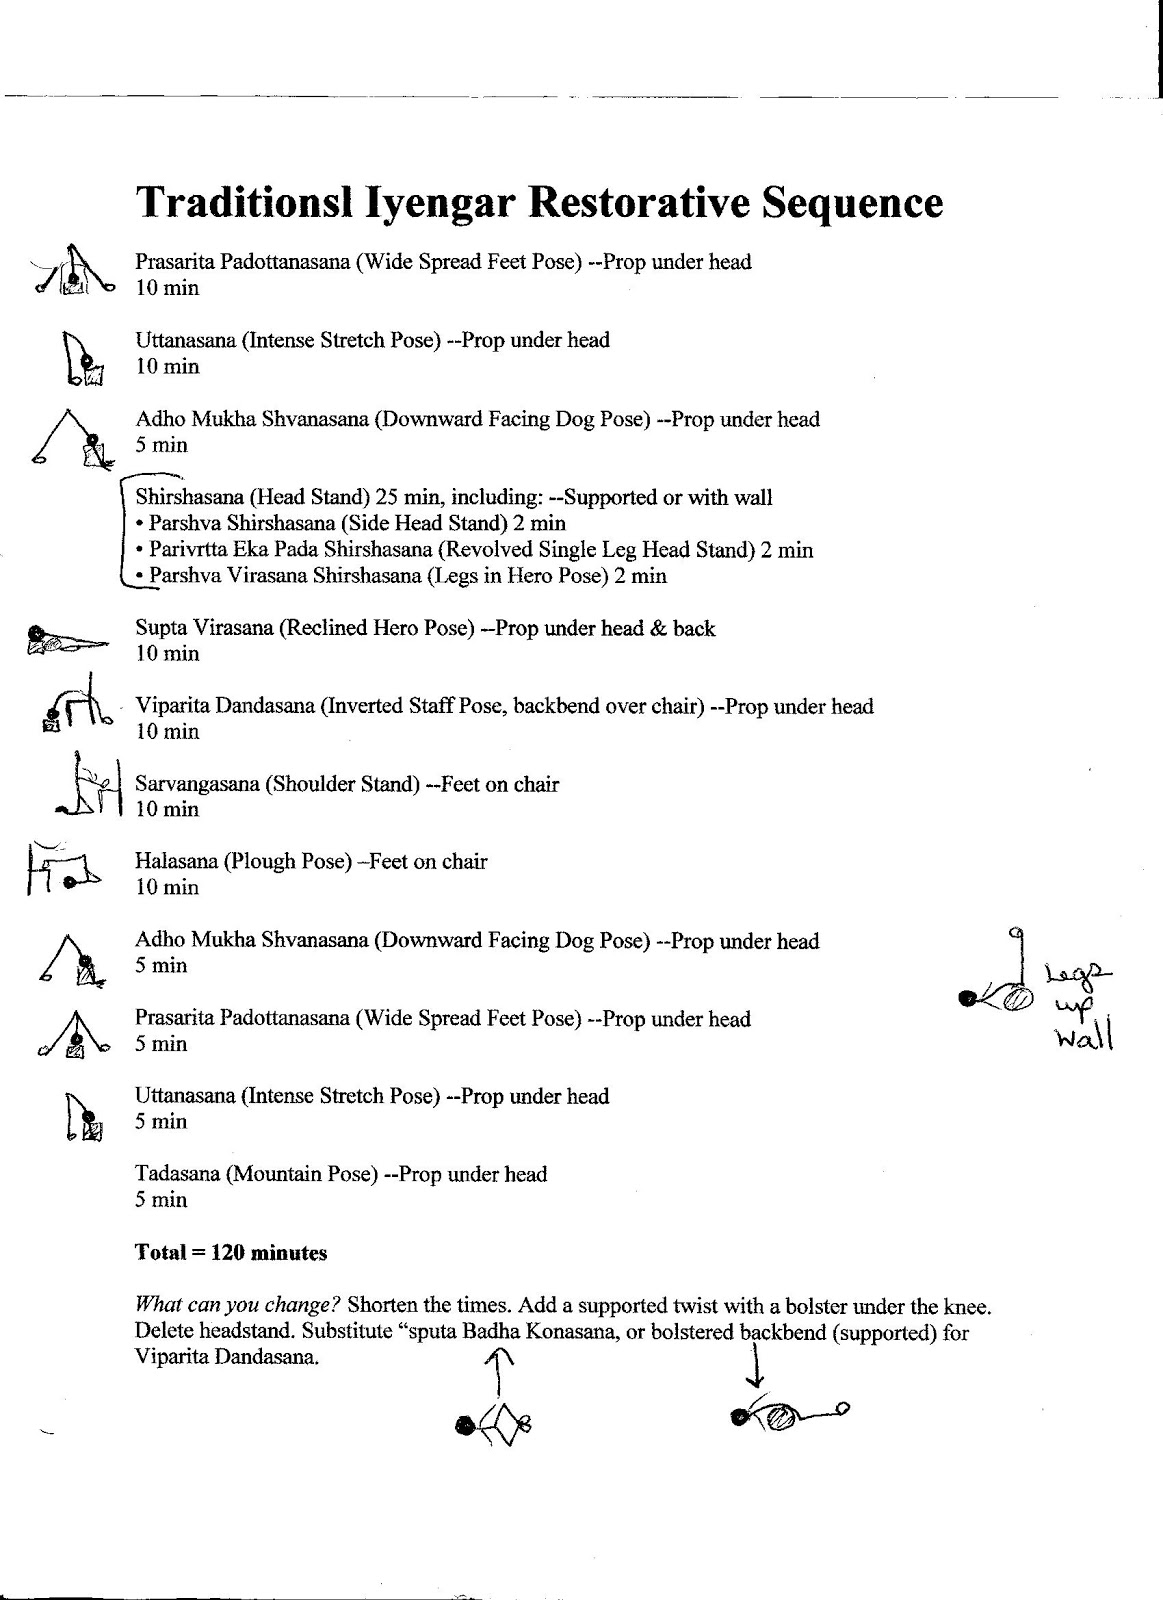 The Complete Yoga Plus Blog Yoga Sequences Iyengar